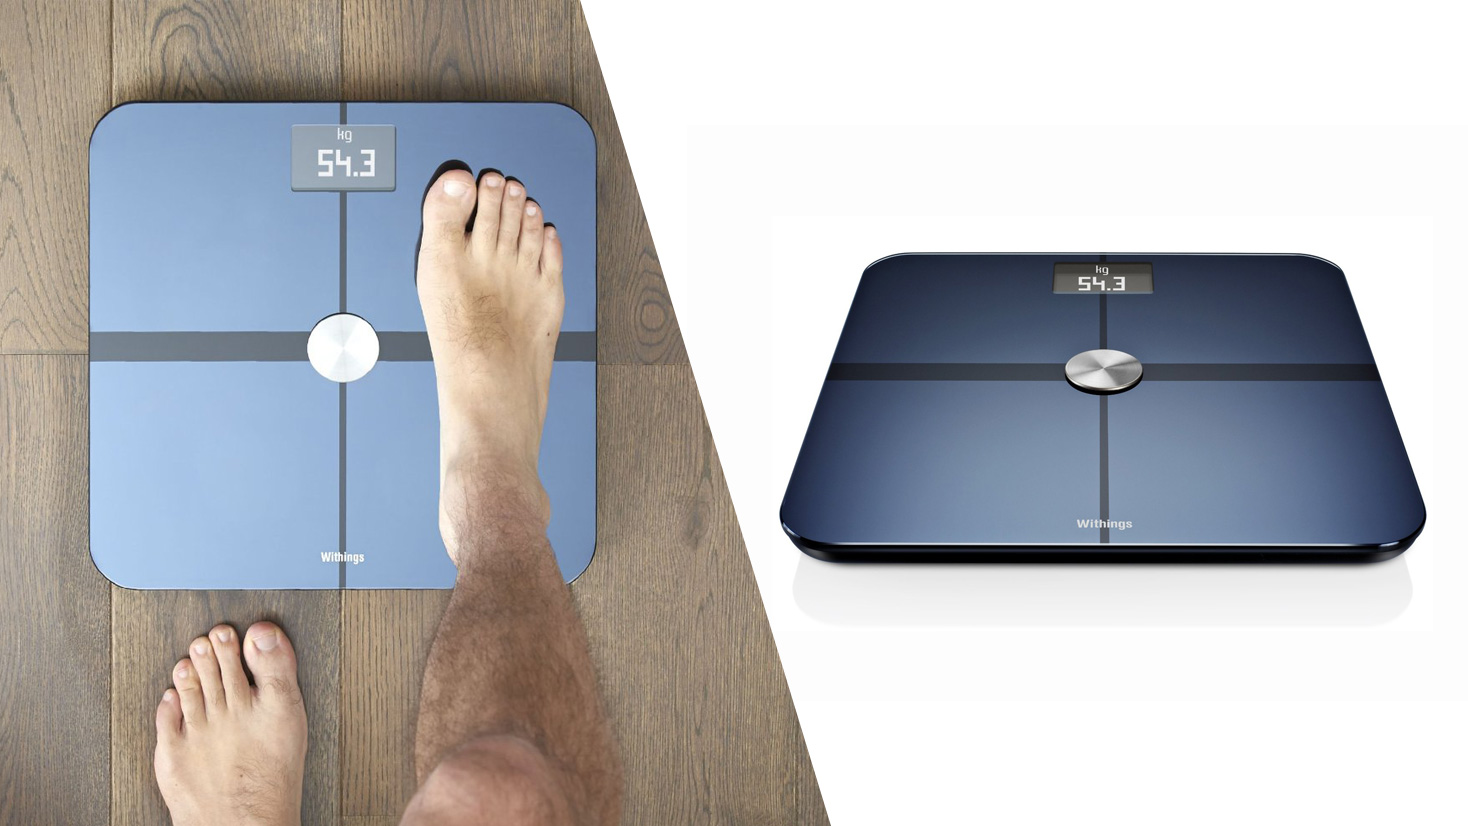 Le body analyser de Withings</h2>